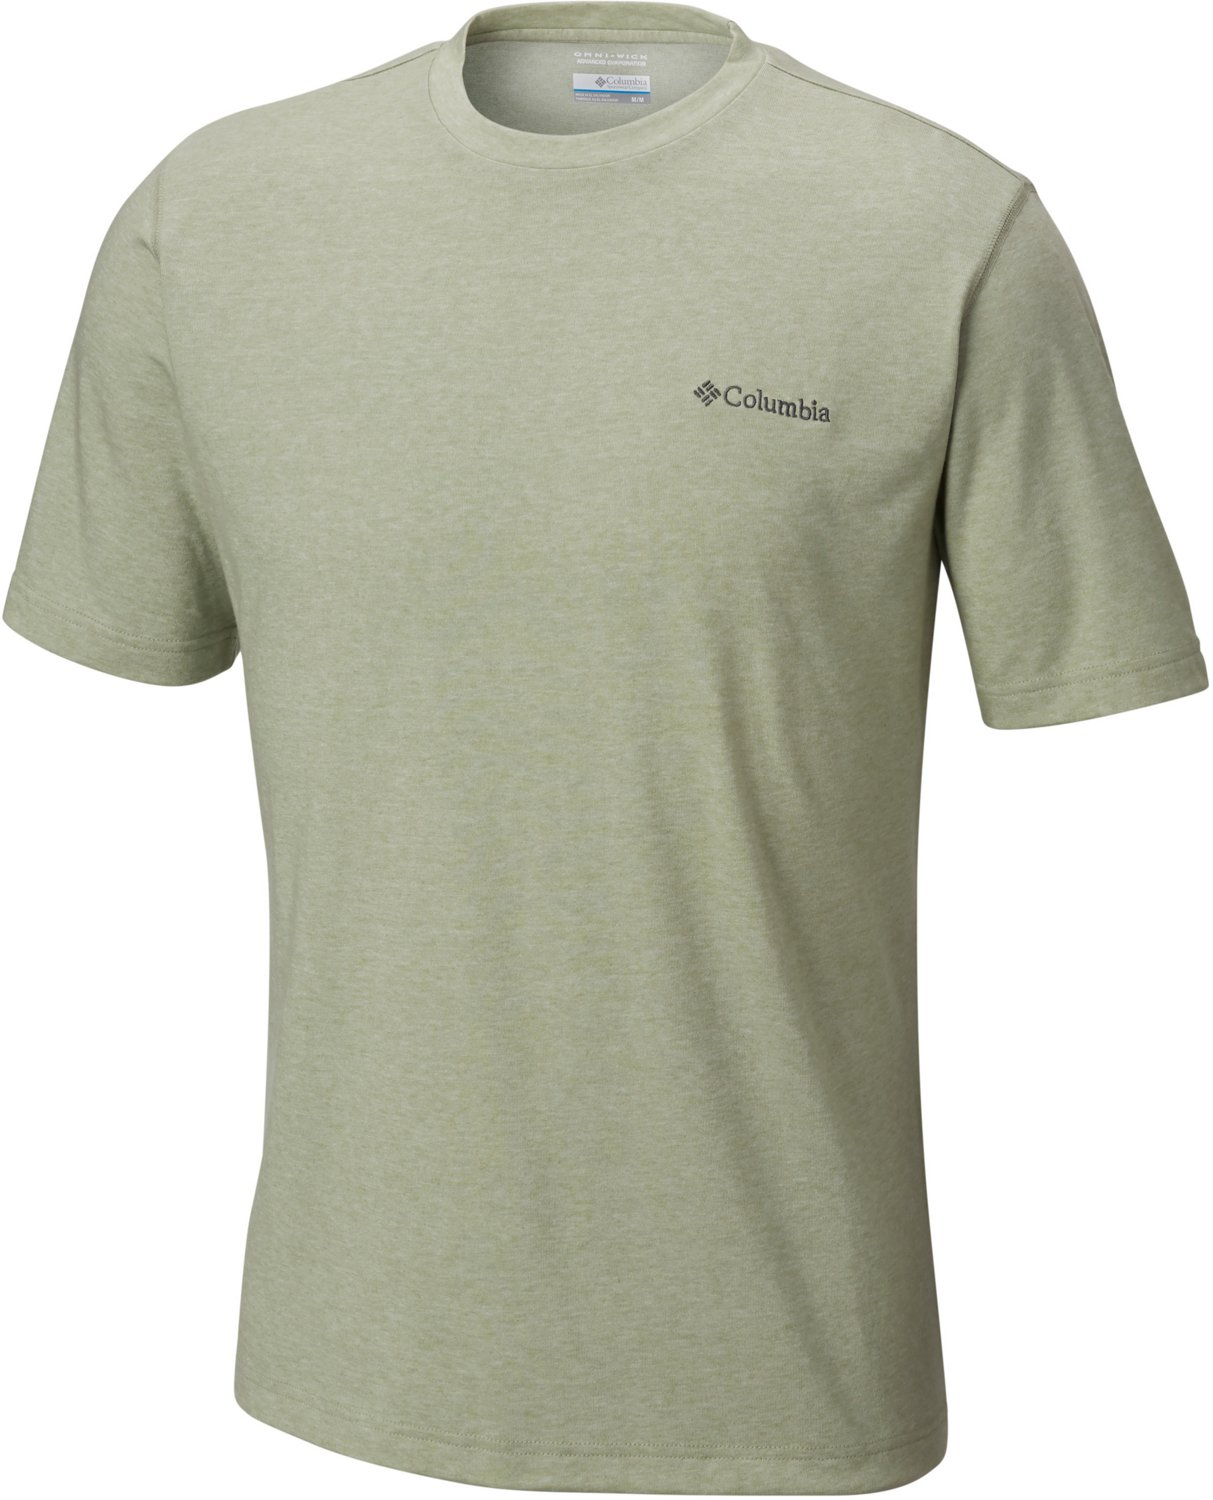 Display product reviews for Columbia Sportswear Men's Thistletown Park Crew Shirt